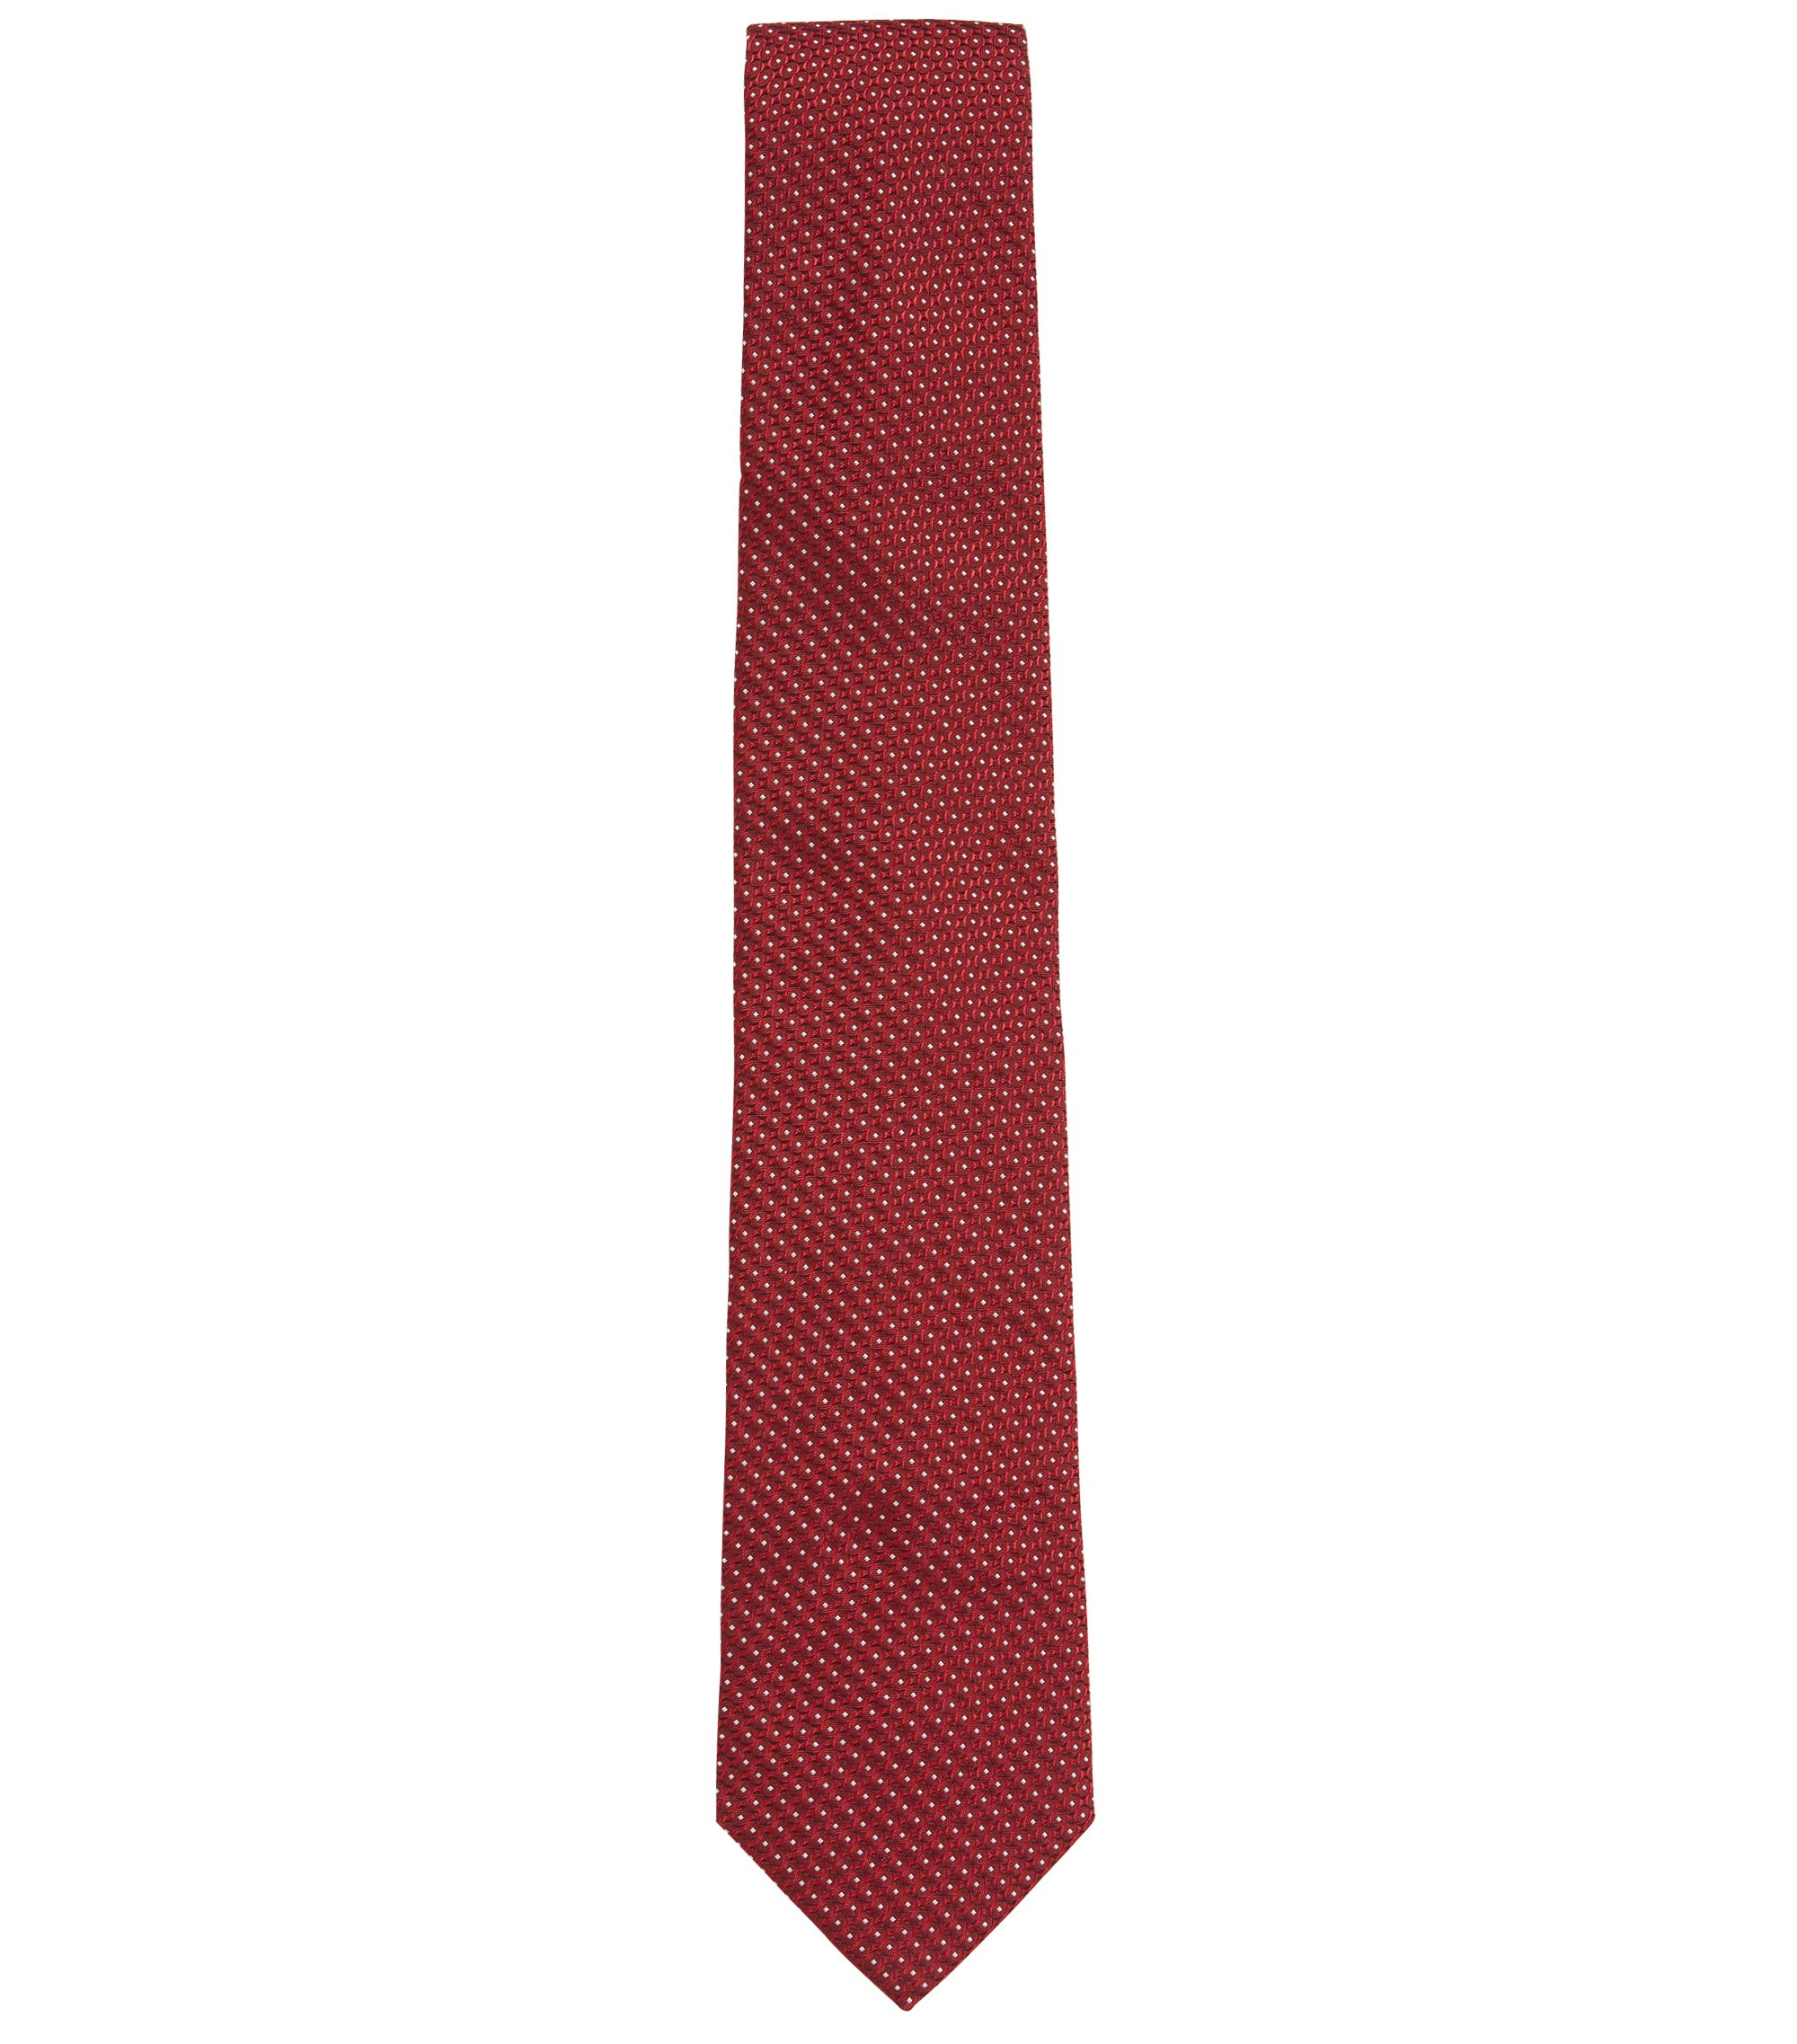 Patterned Italian Silk Tie, Red